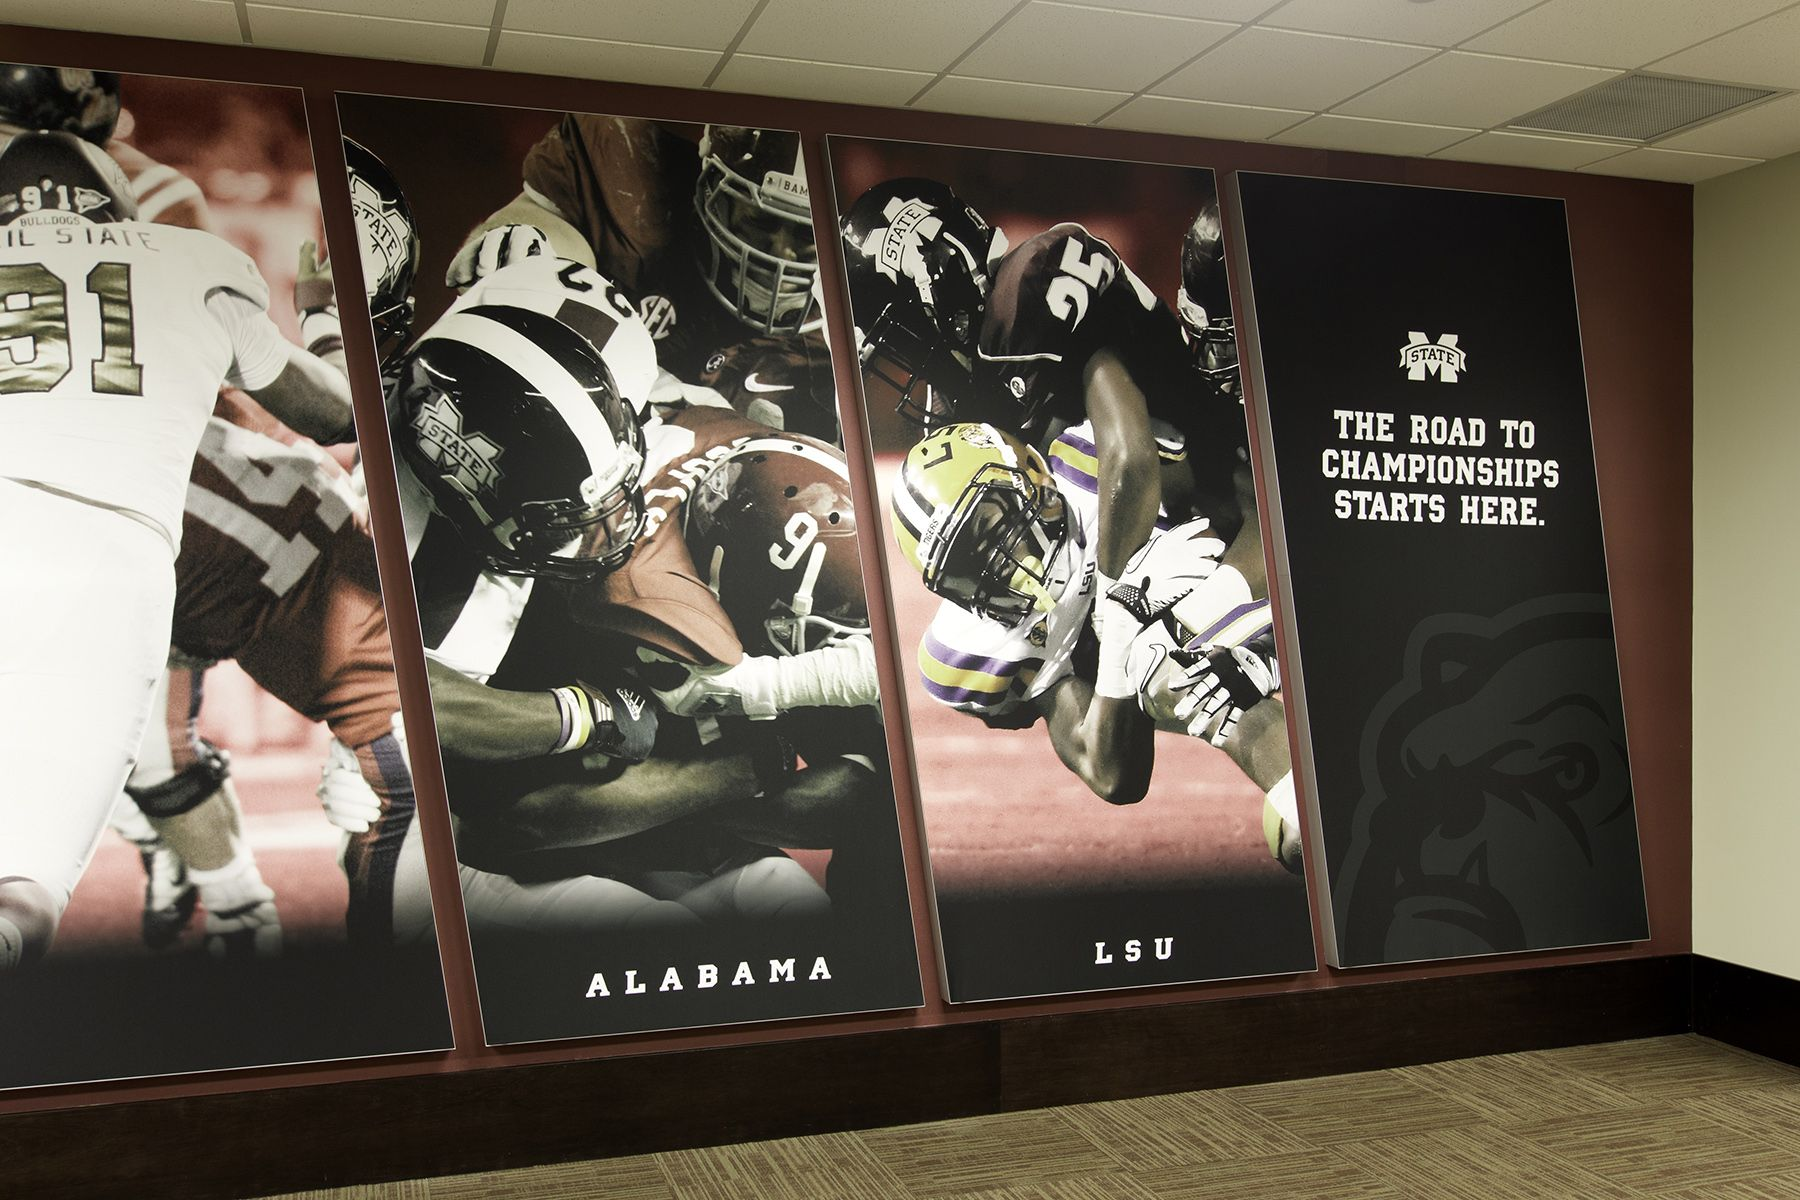 Mississippi State University Leo Seal Jr Football Complex Advent Nashville Tn Mississippi State University History Wall Office Design Concepts